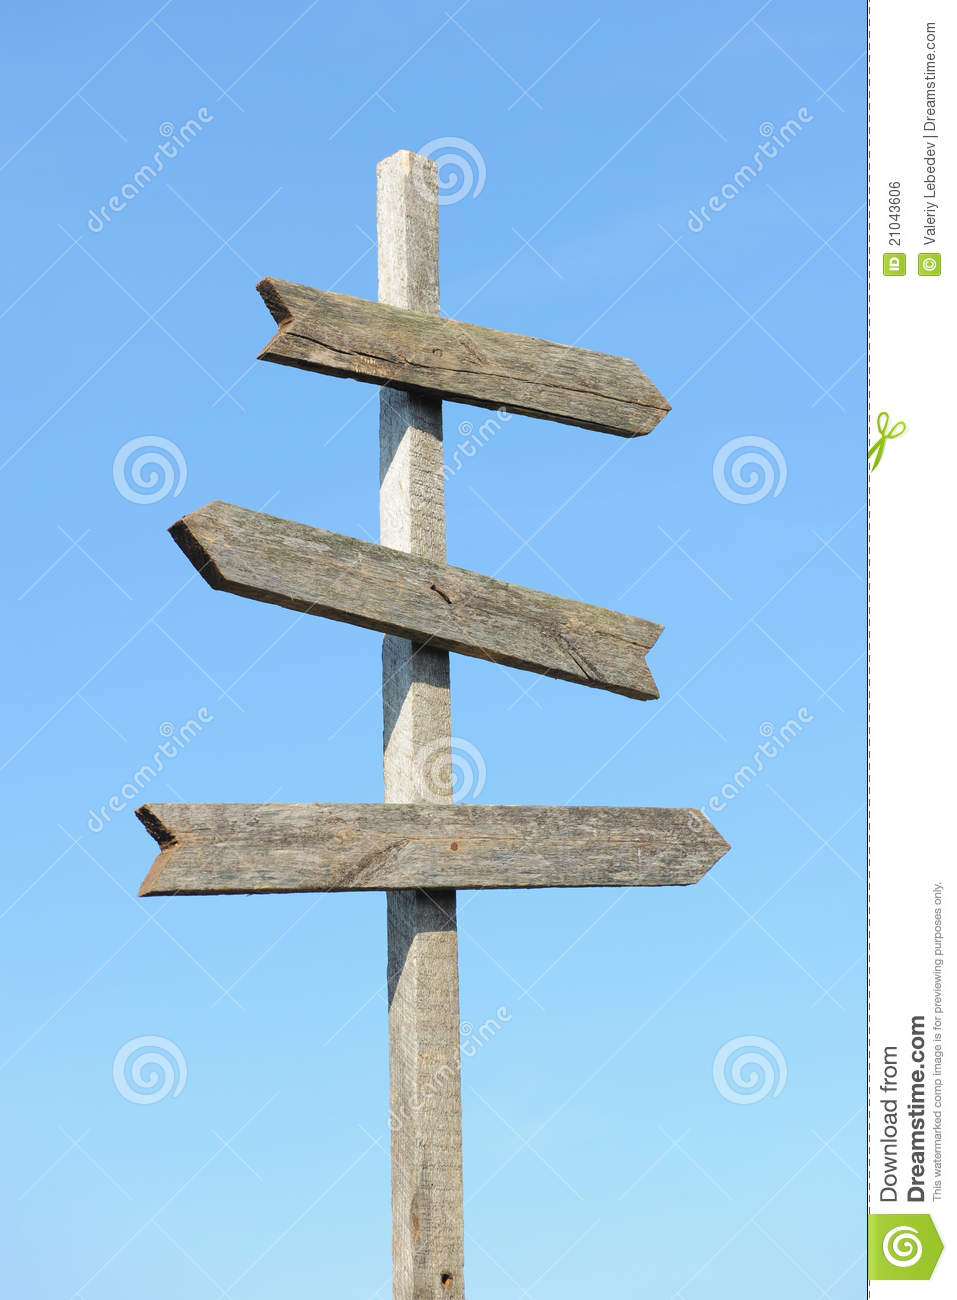 Wooden Blank Sign Post Royalty Free Stock Image - Image ...